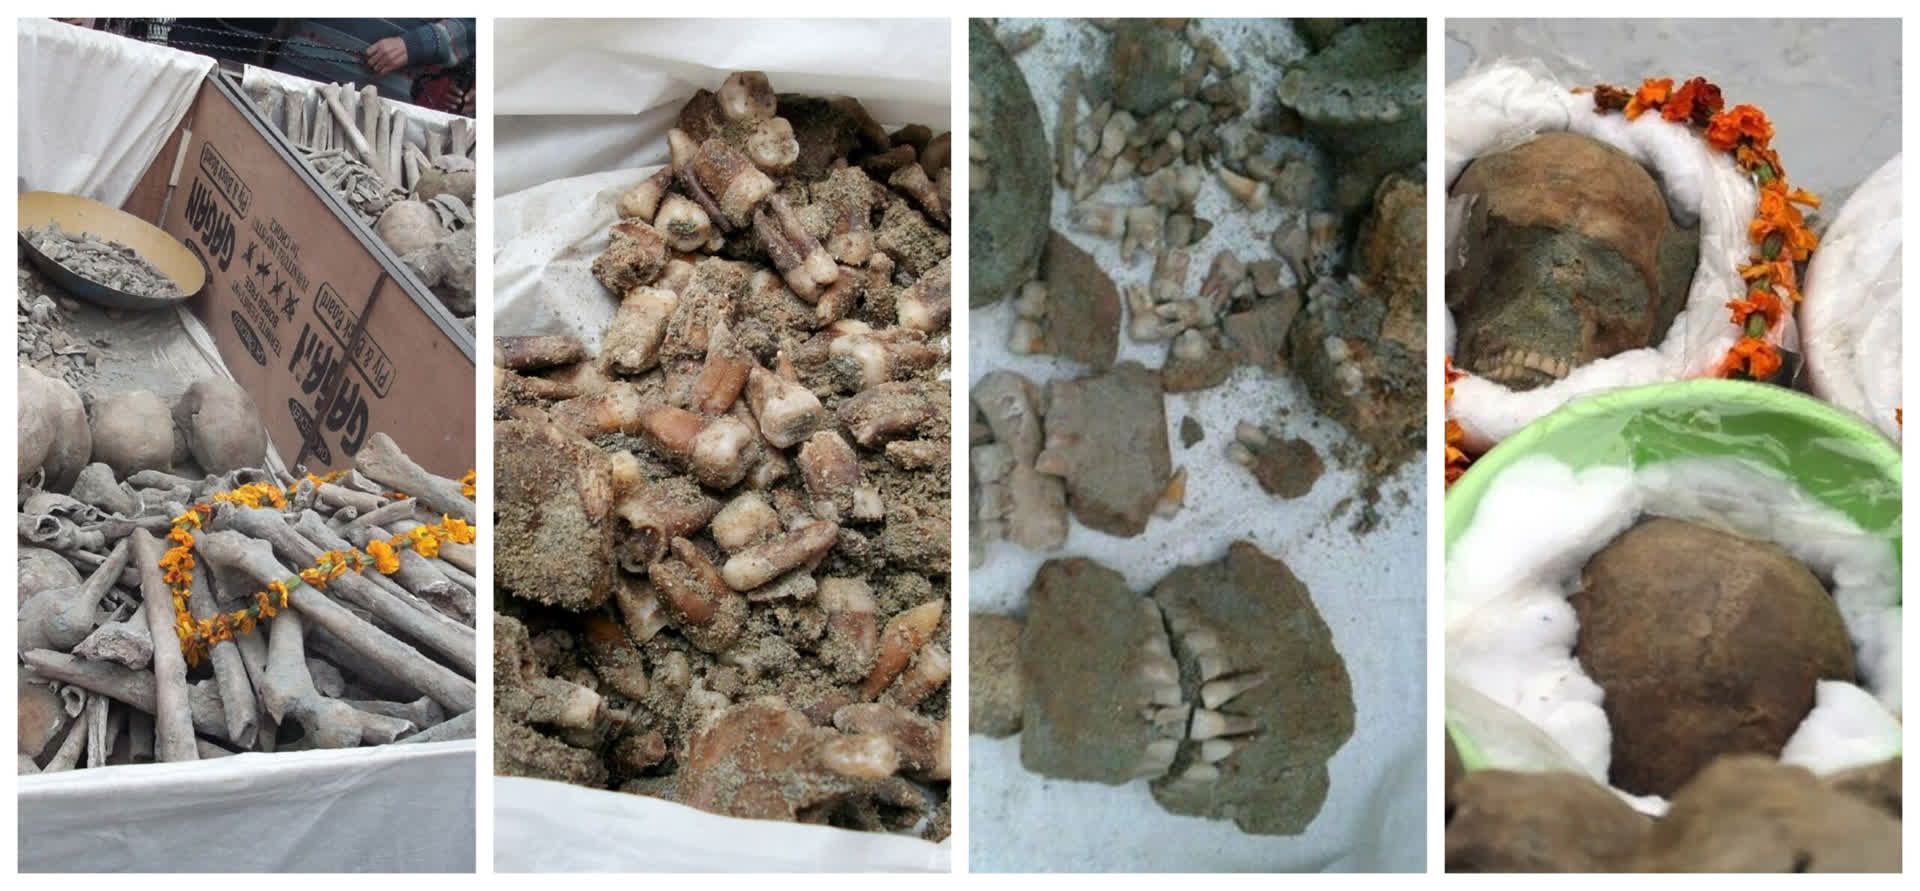 Skeletal remains found from the well